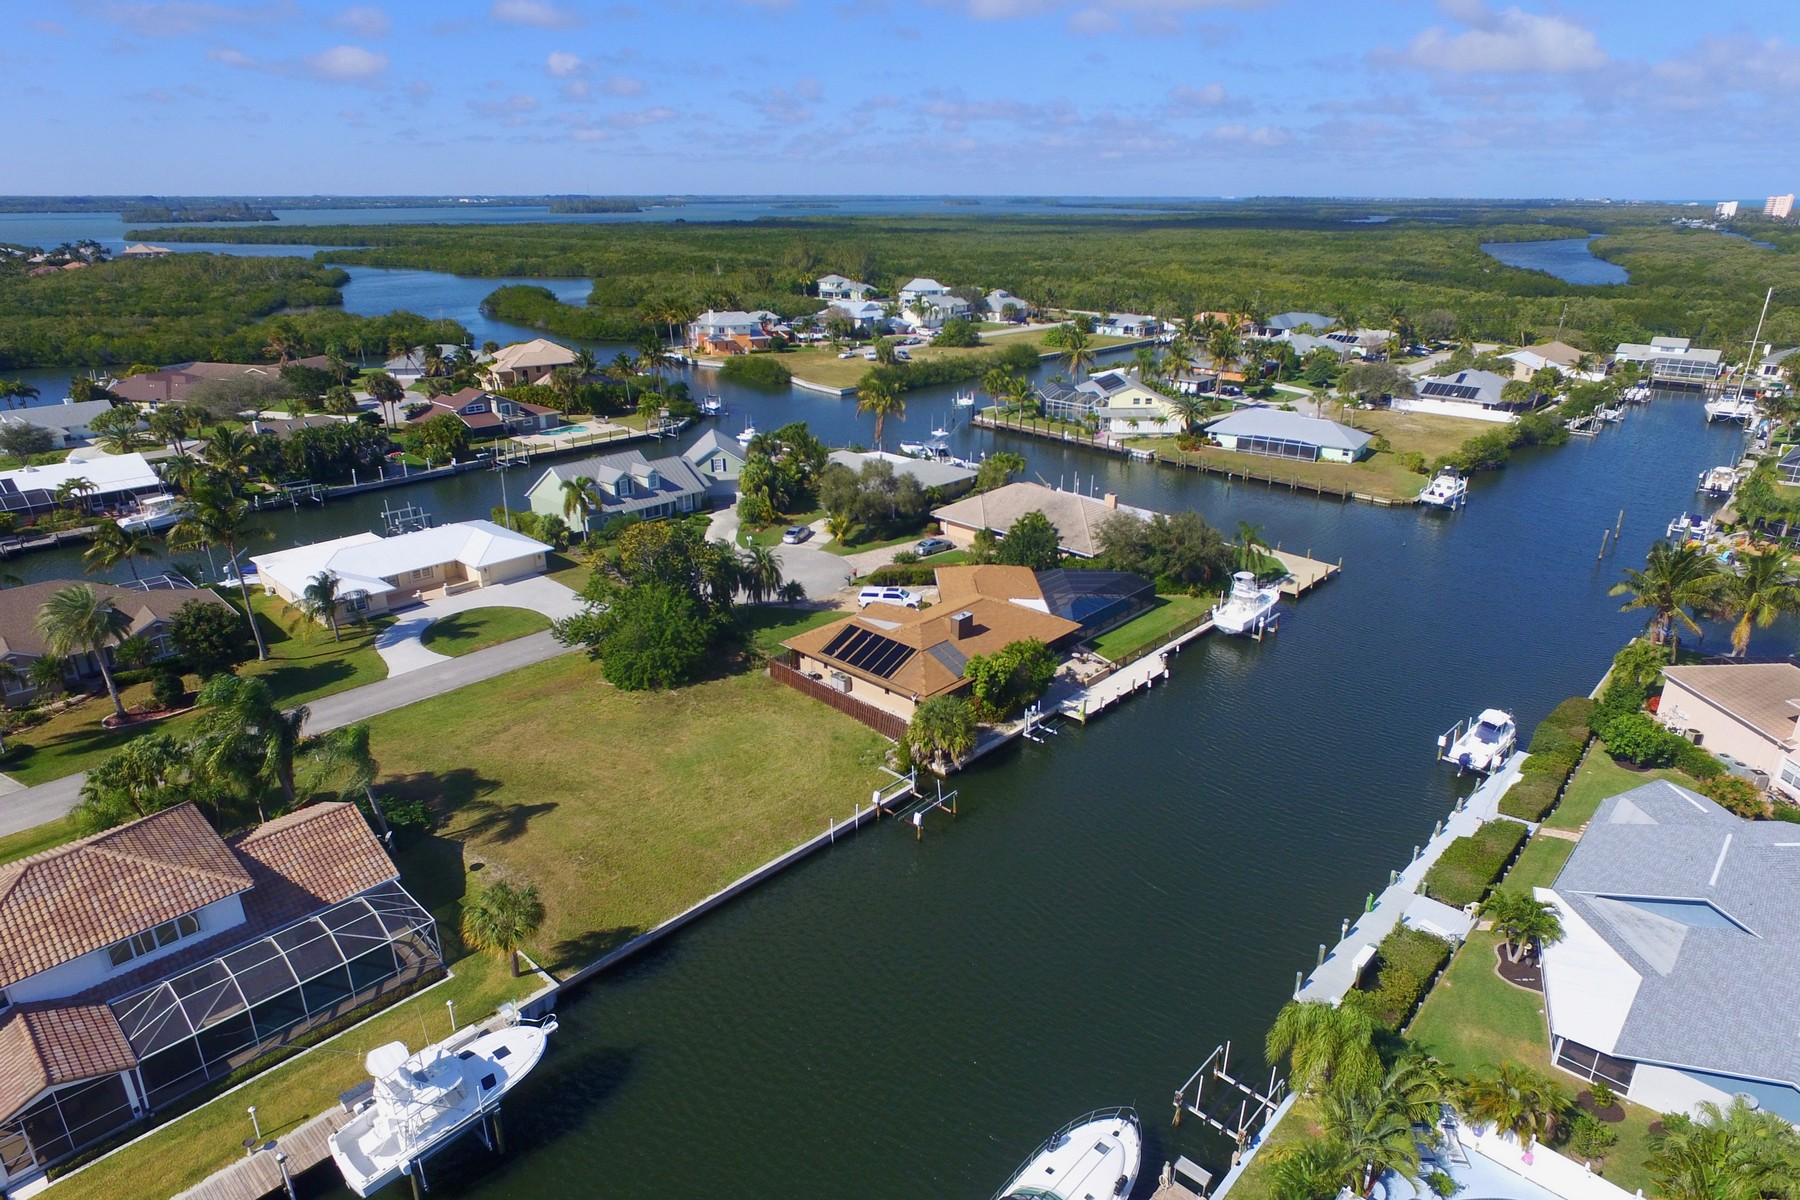 Land for Sale at Be the captain of your own waterfront homesite & build your dream home! 126 Queen Catherina Court, Hutchinson Island, Florida 34949 United States